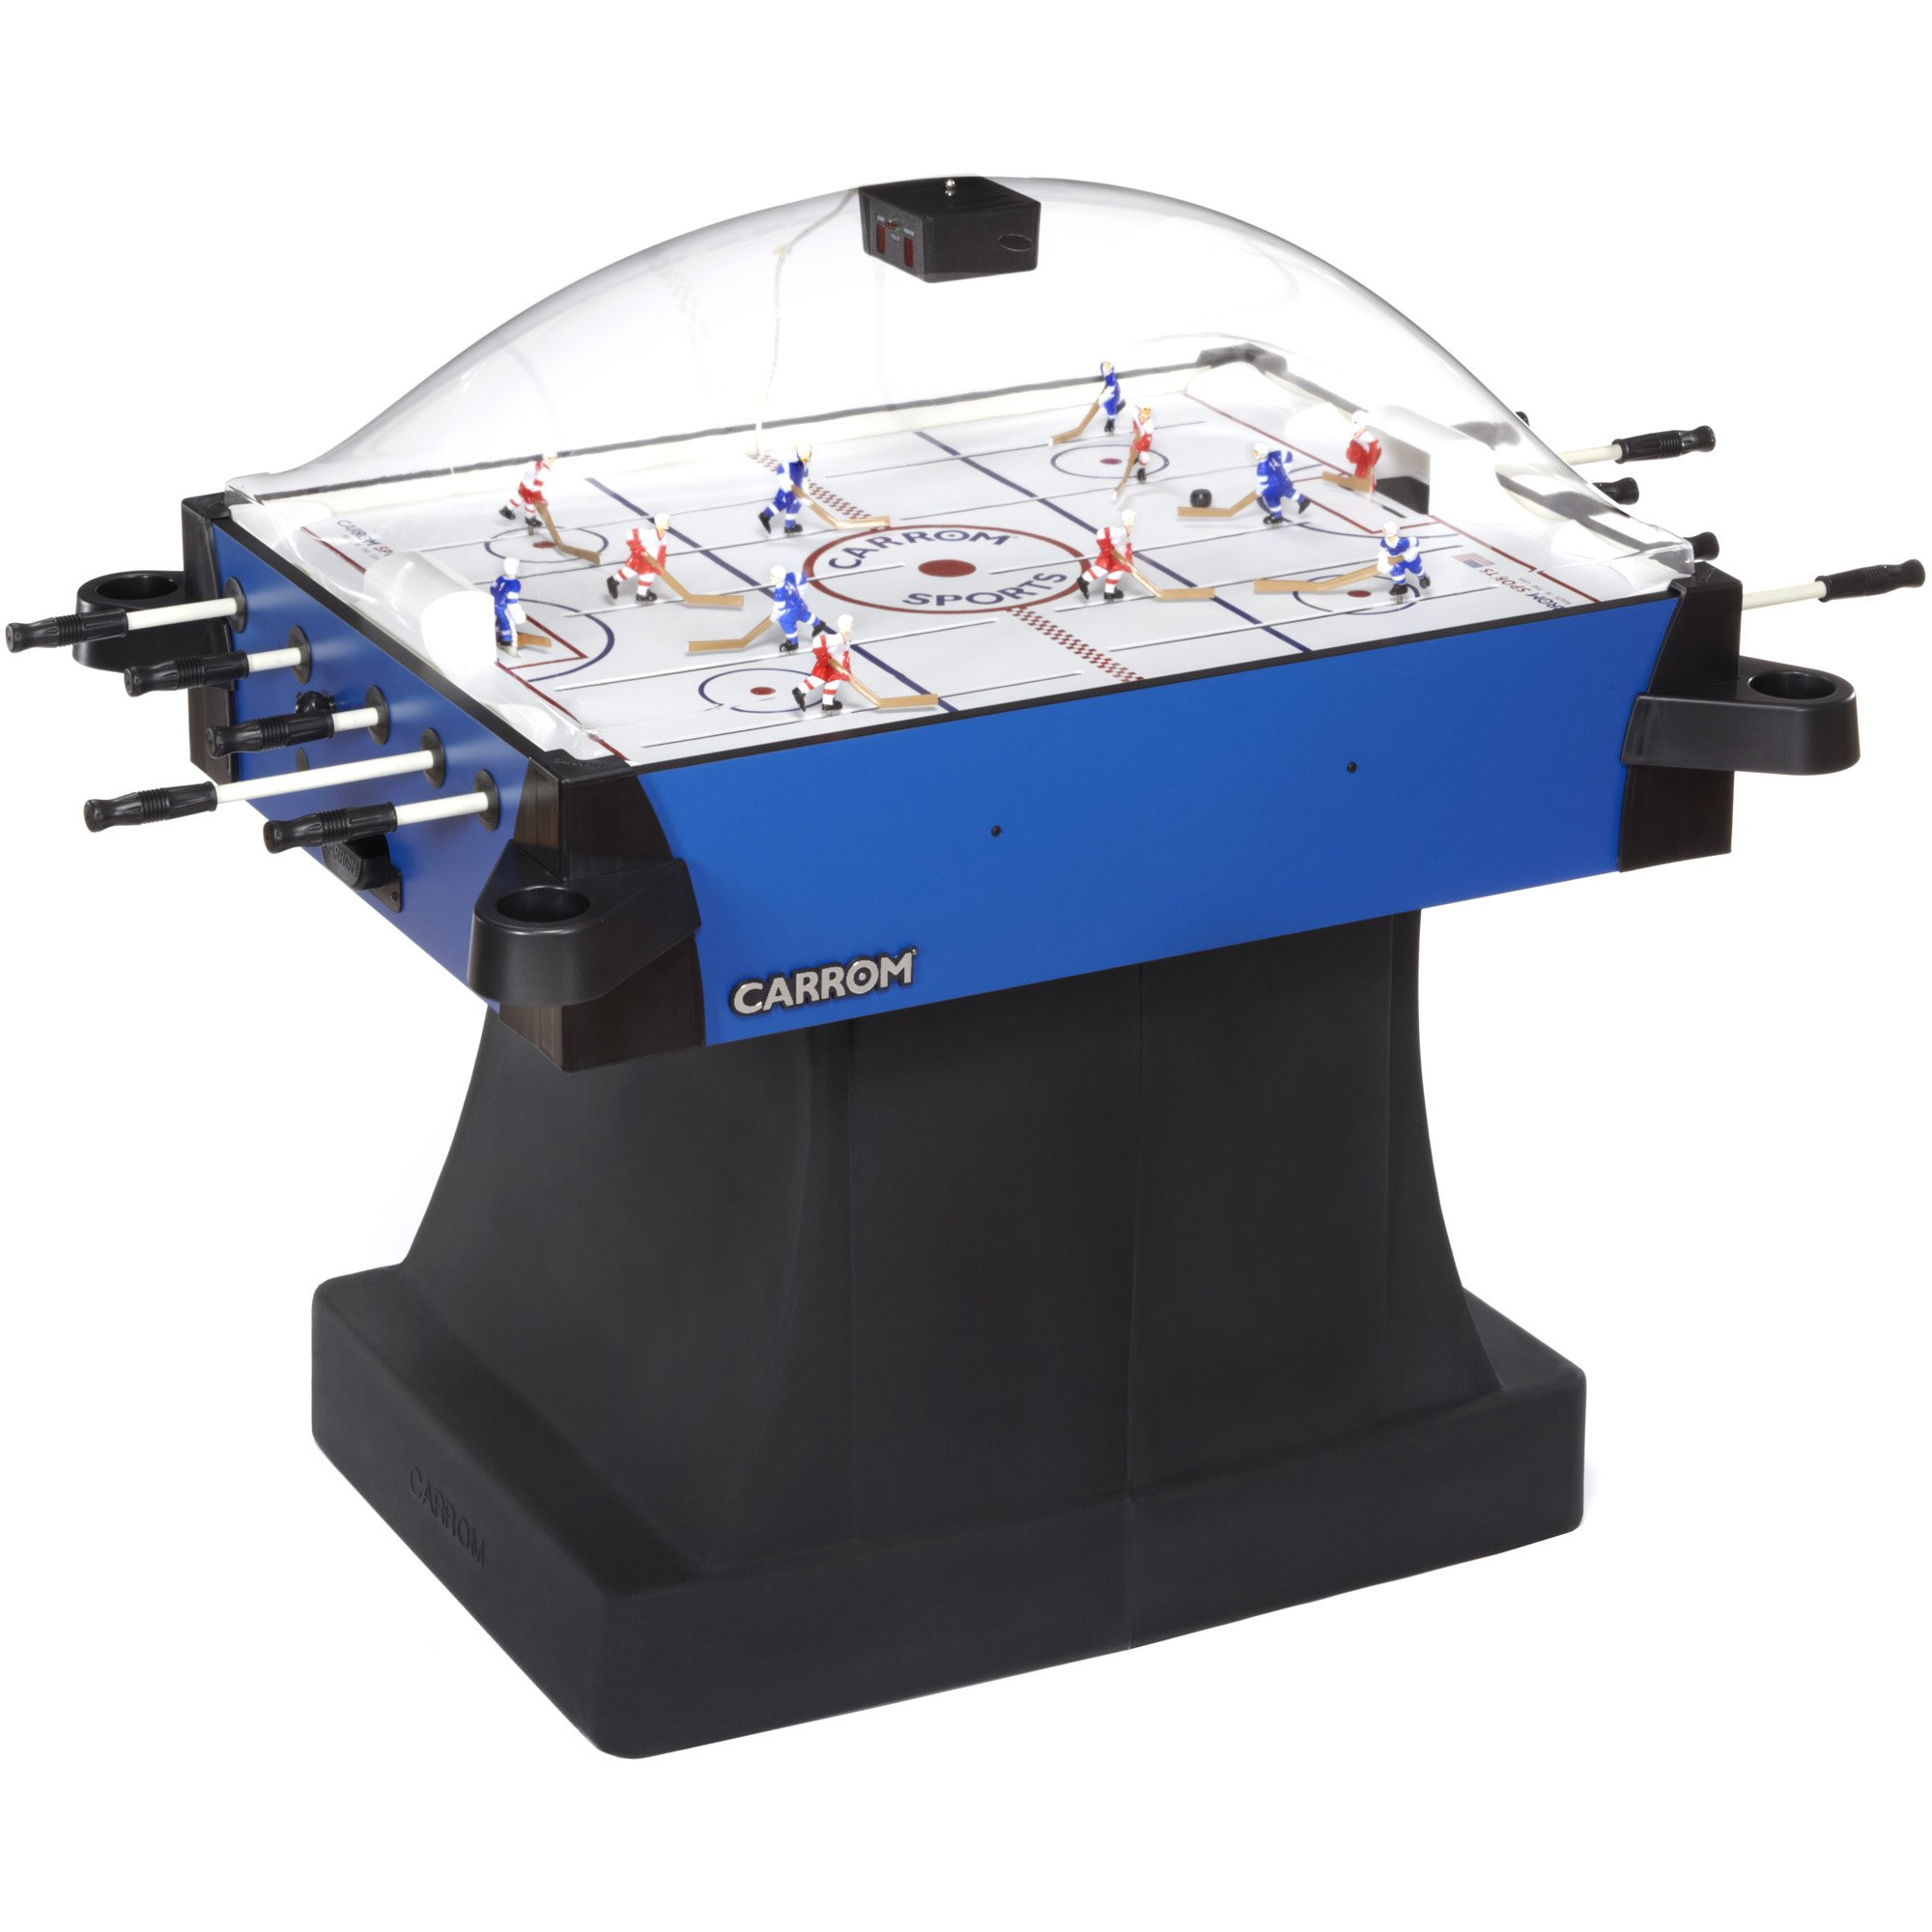 Carrom 435.01 Signature Stick Hockey Table with Pedestal (Blue) by Carrom